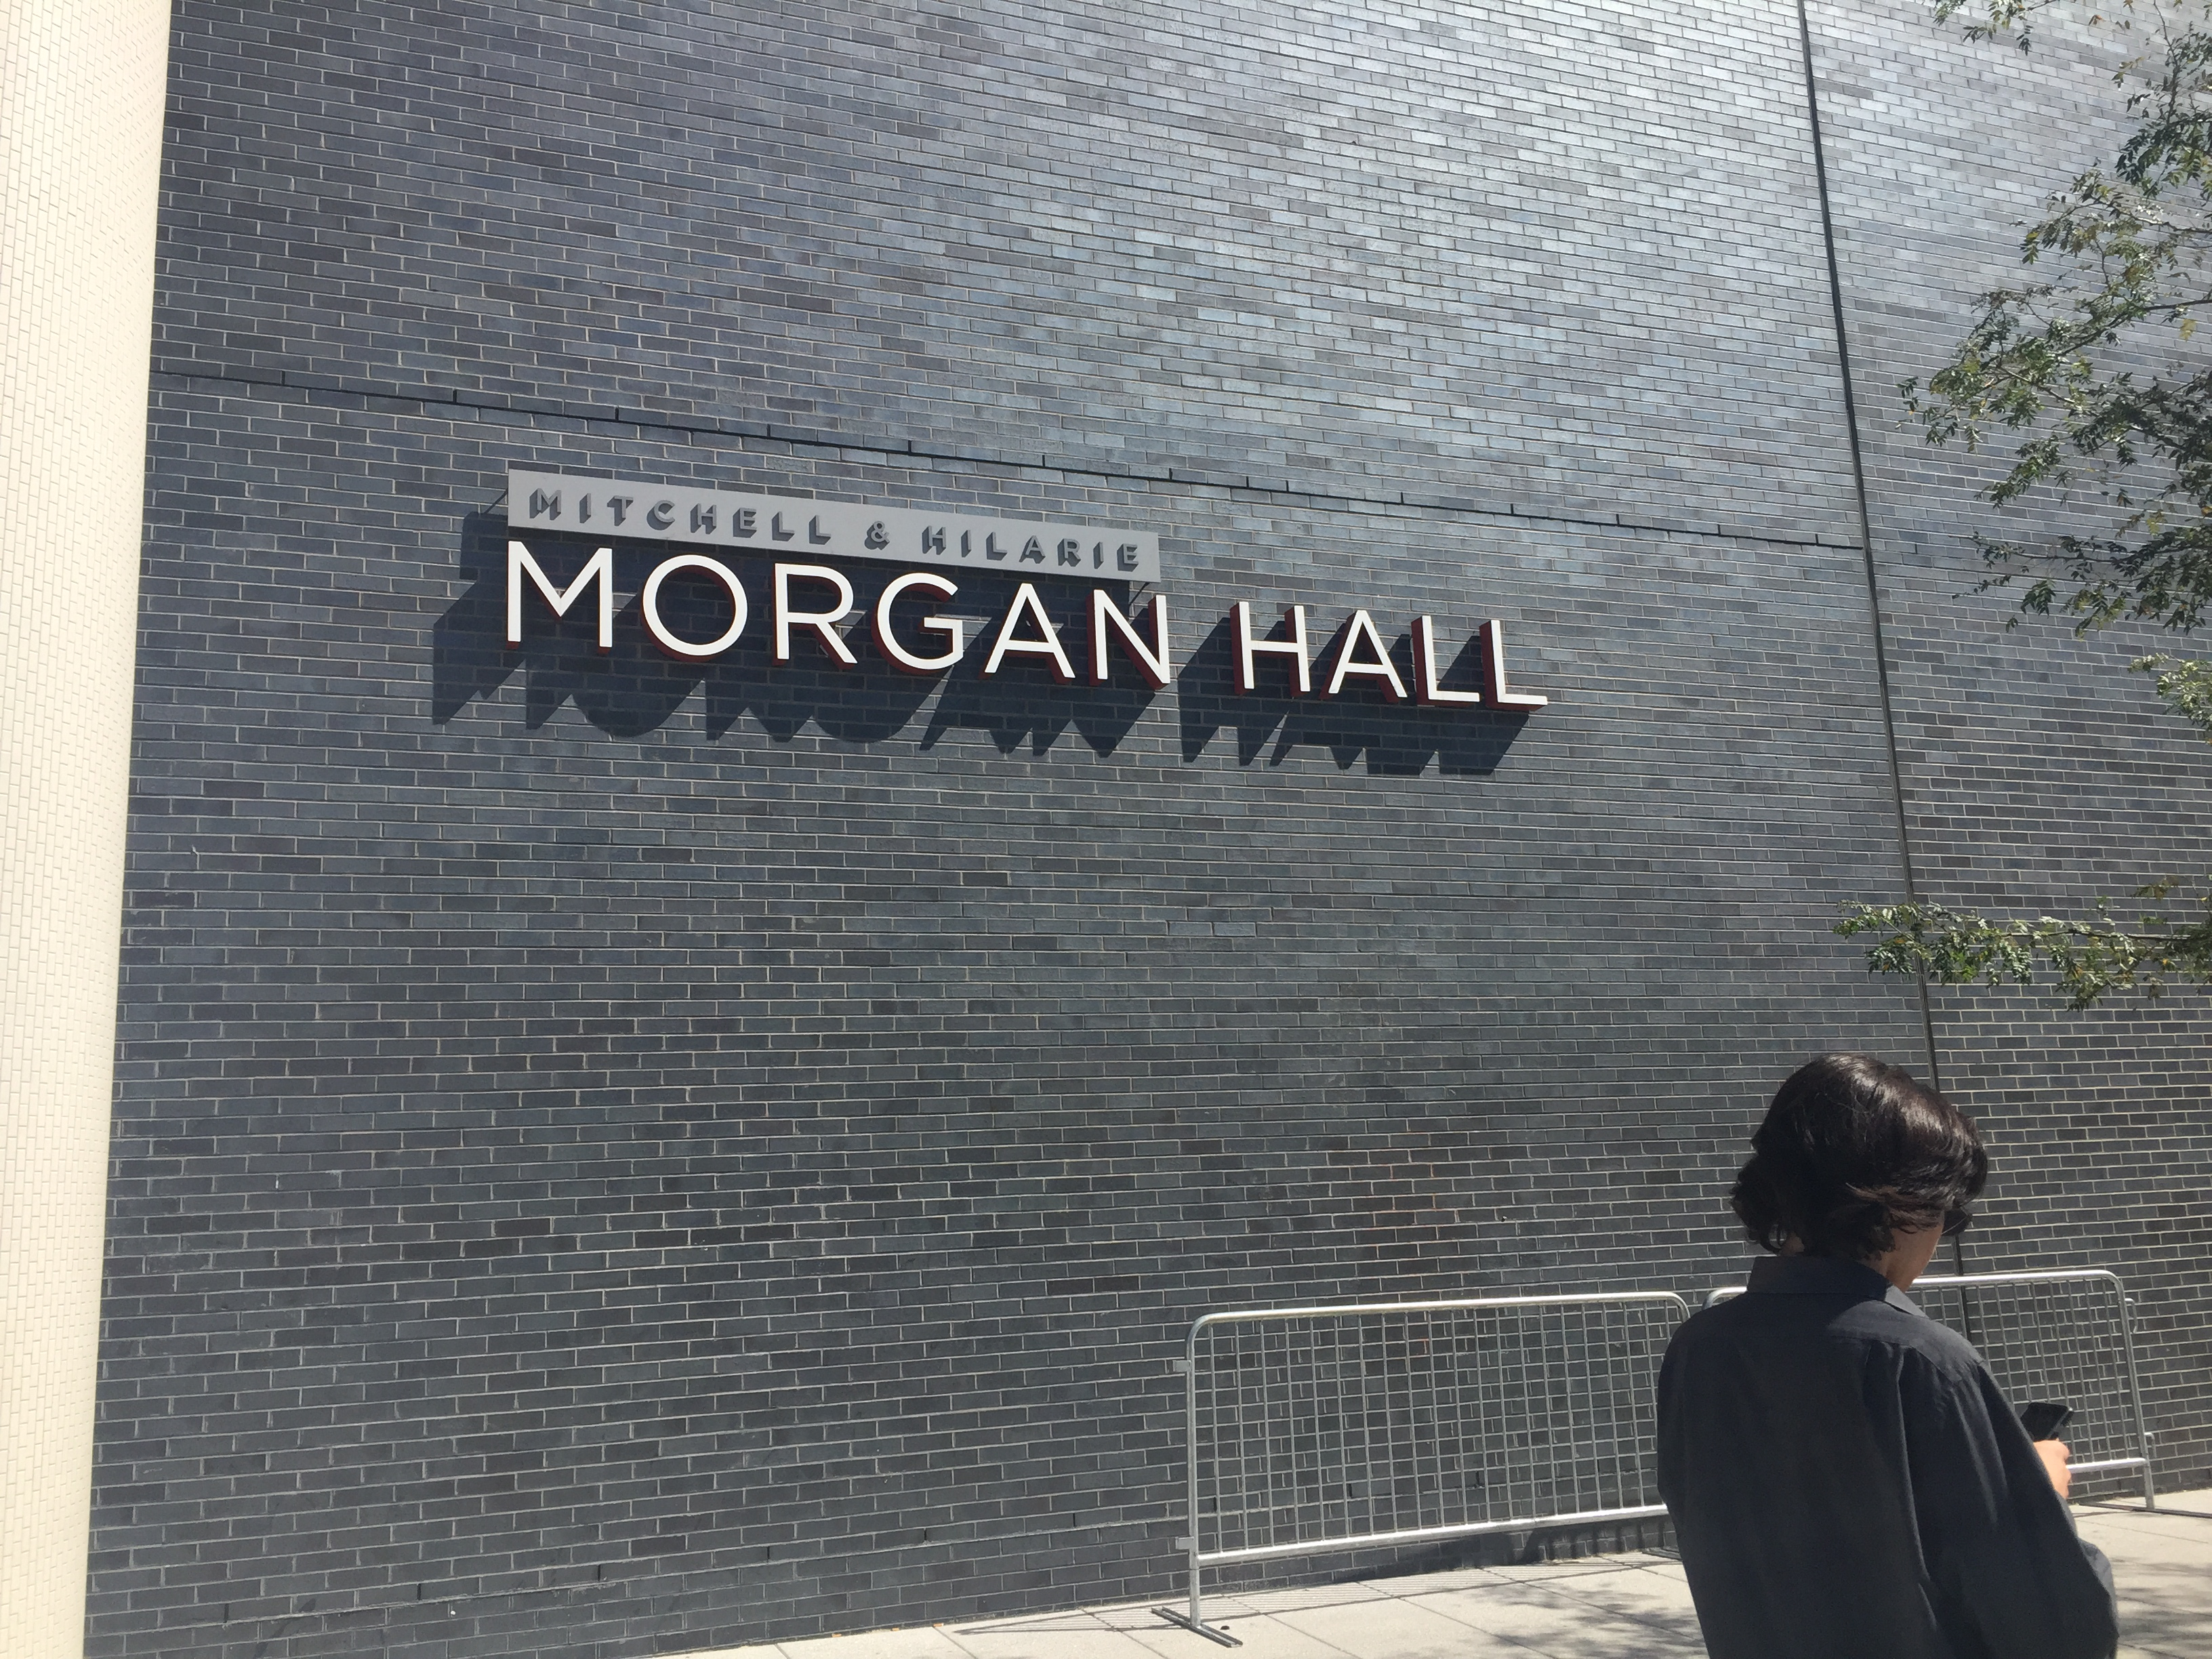 Morgan Hall student disrupts Philadelphia Police Helicopter by pointing laser light at them.